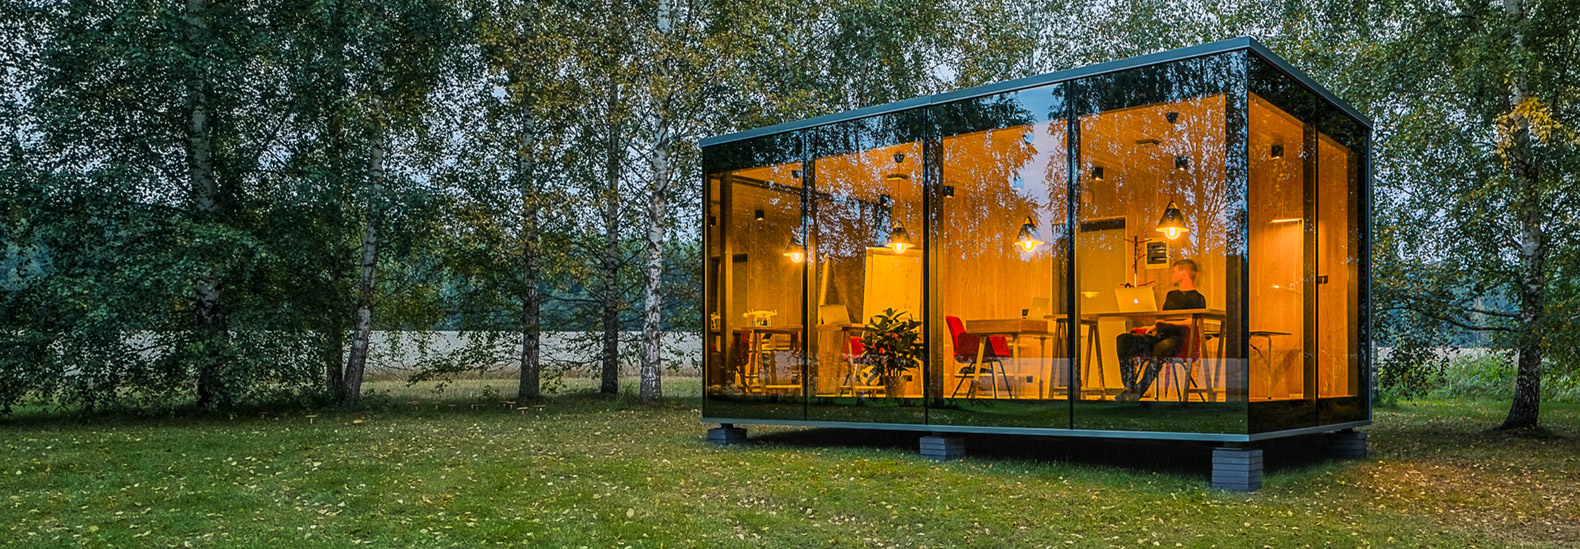 ÖÖD prefab glass cabin immerses you in nature while you work